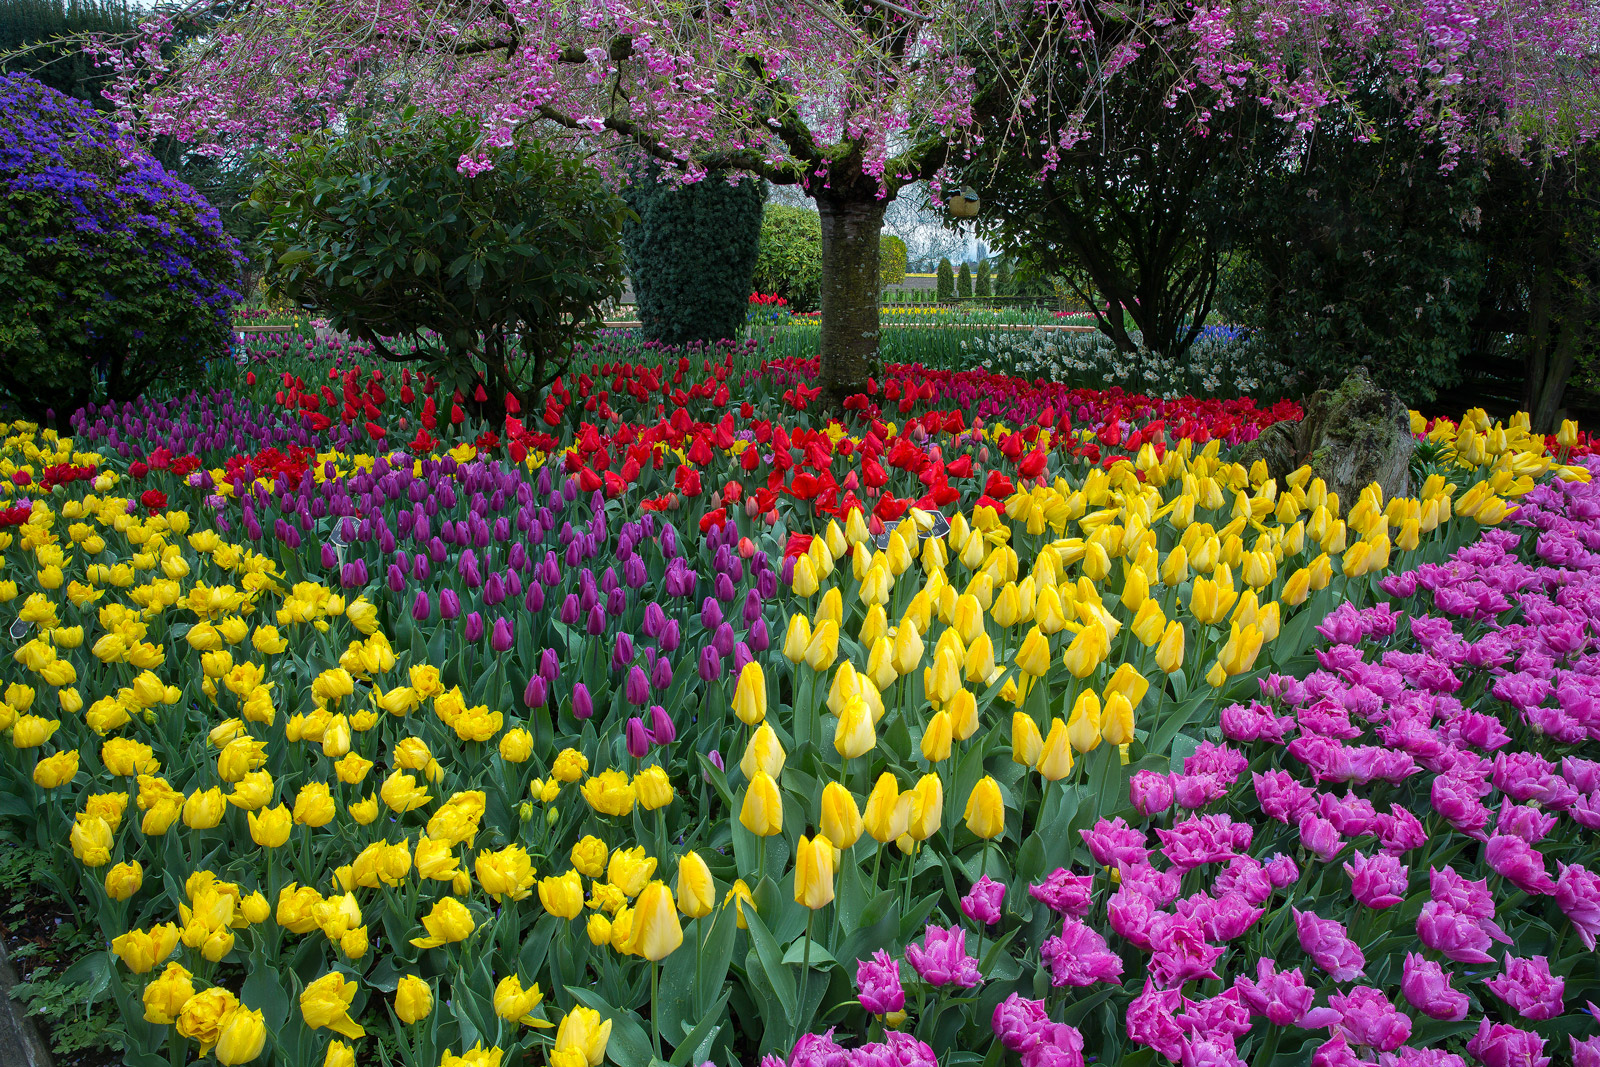 A Limited Edition, Fine Art photograph of a multitude of colors of tulips blooming in a setting beneath a flowering tree in the...